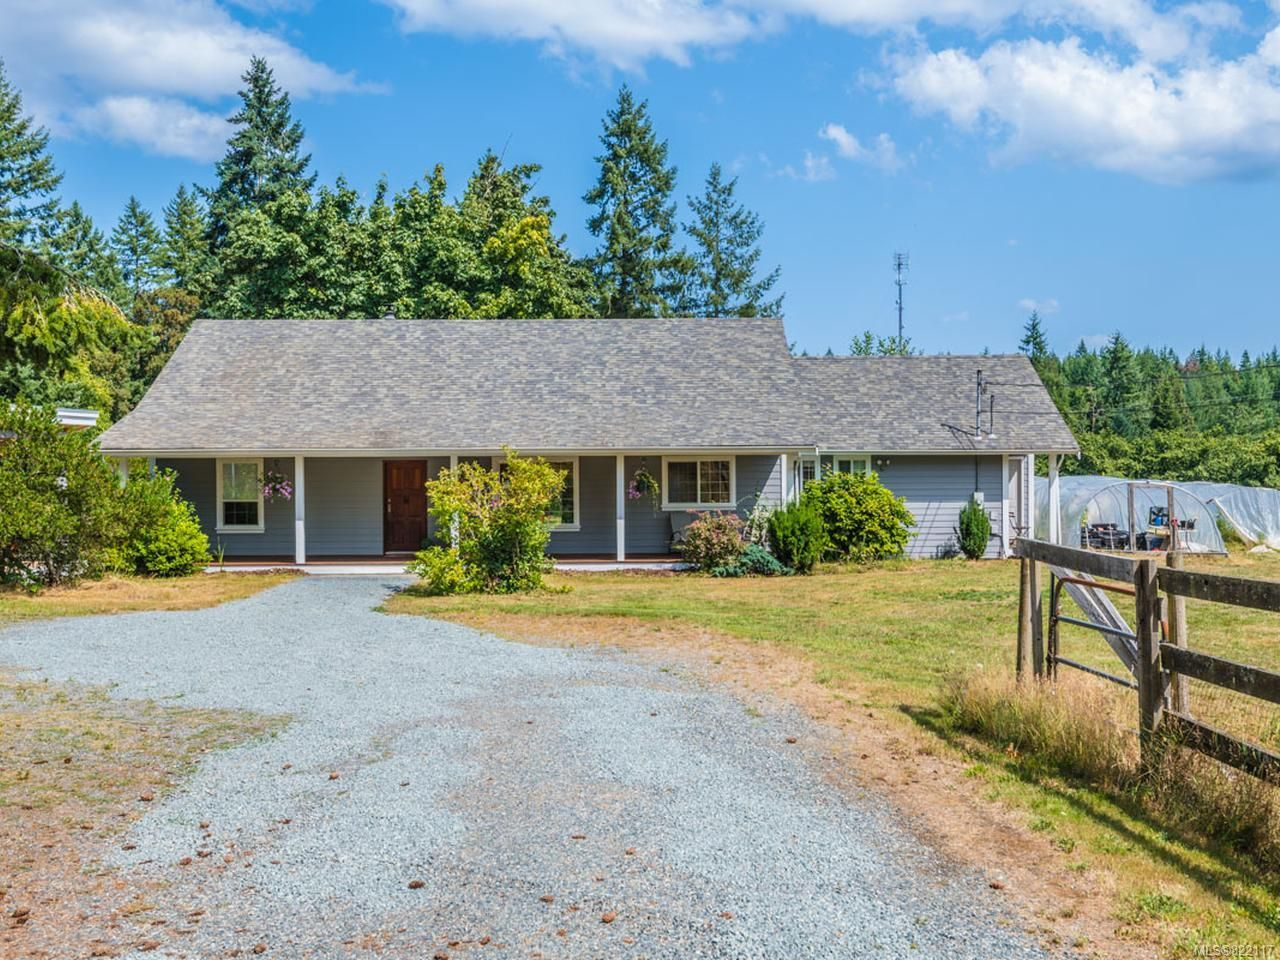 Main Photo: 3390 HENRY ROAD in CHEMAINUS: Du Chemainus House for sale (Duncan)  : MLS®# 822117